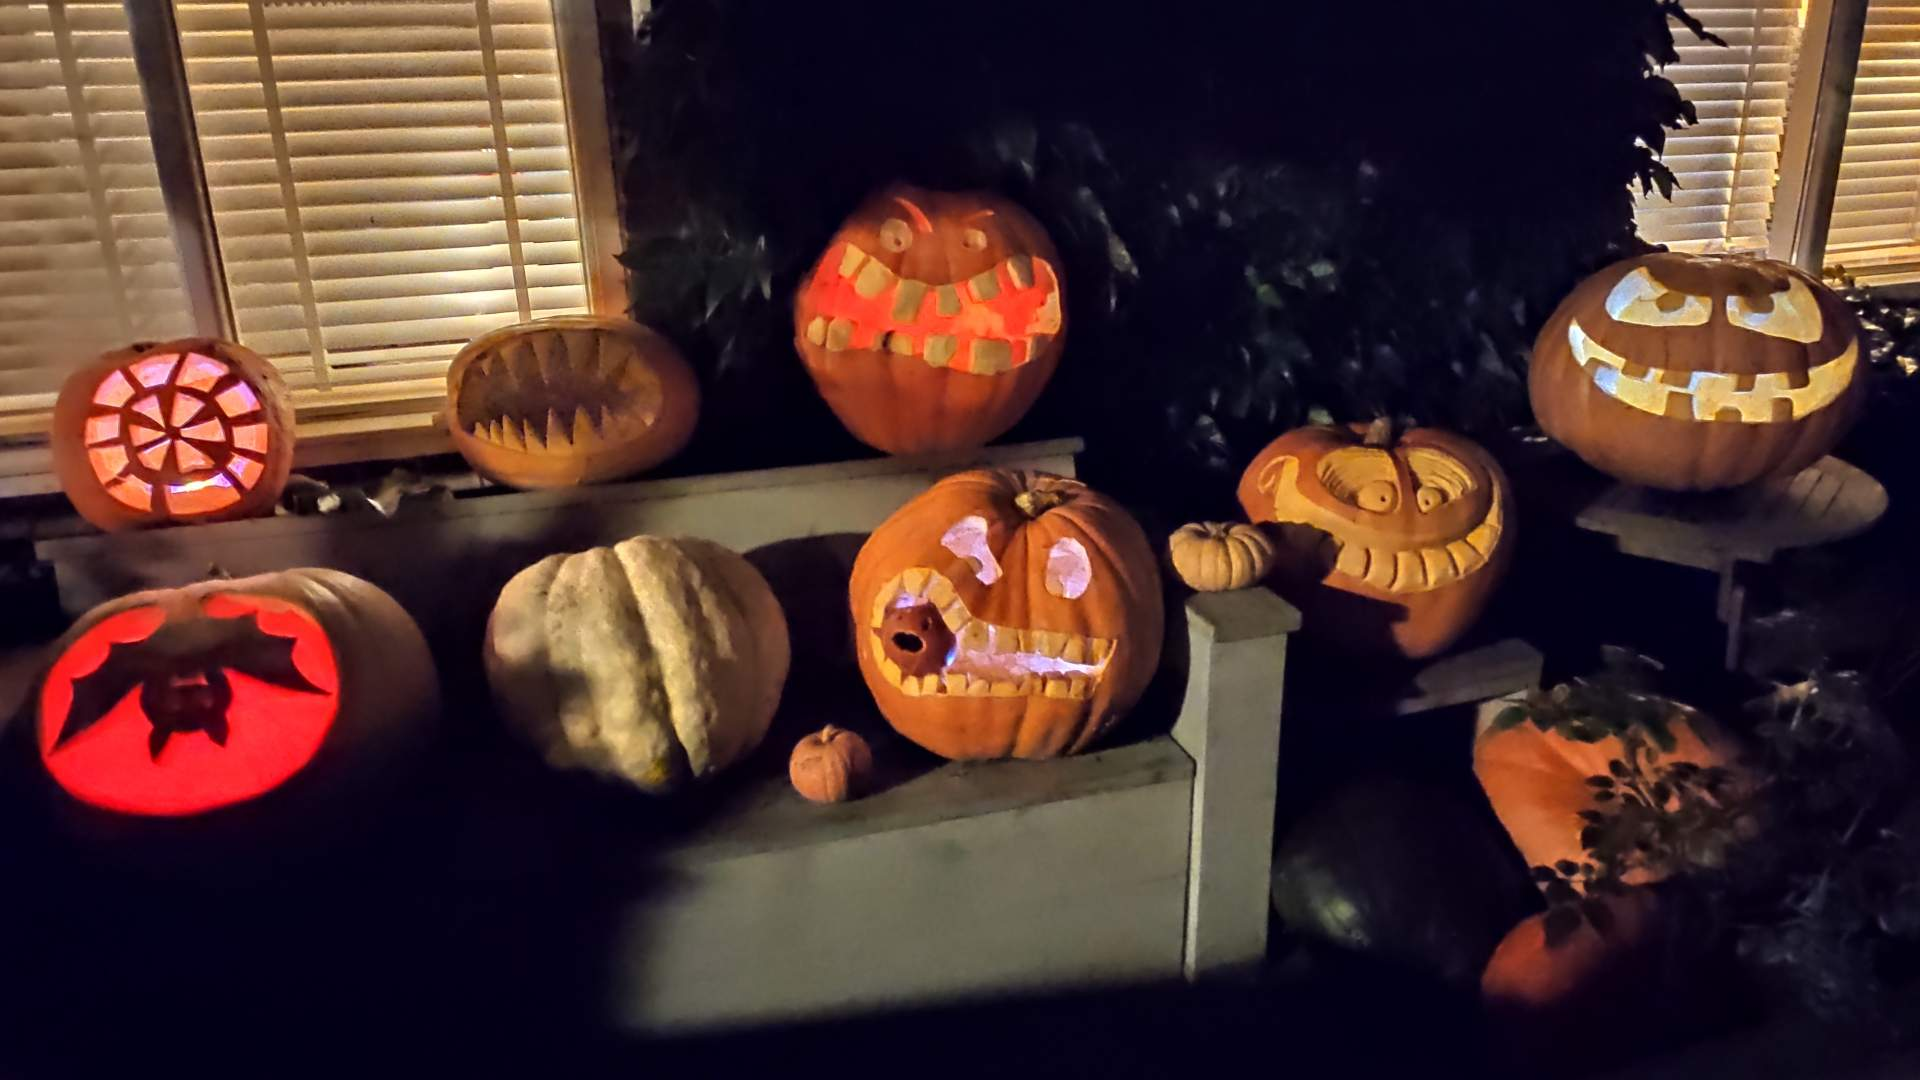 Pumpkins with lights are the perfect decoration for Halloween